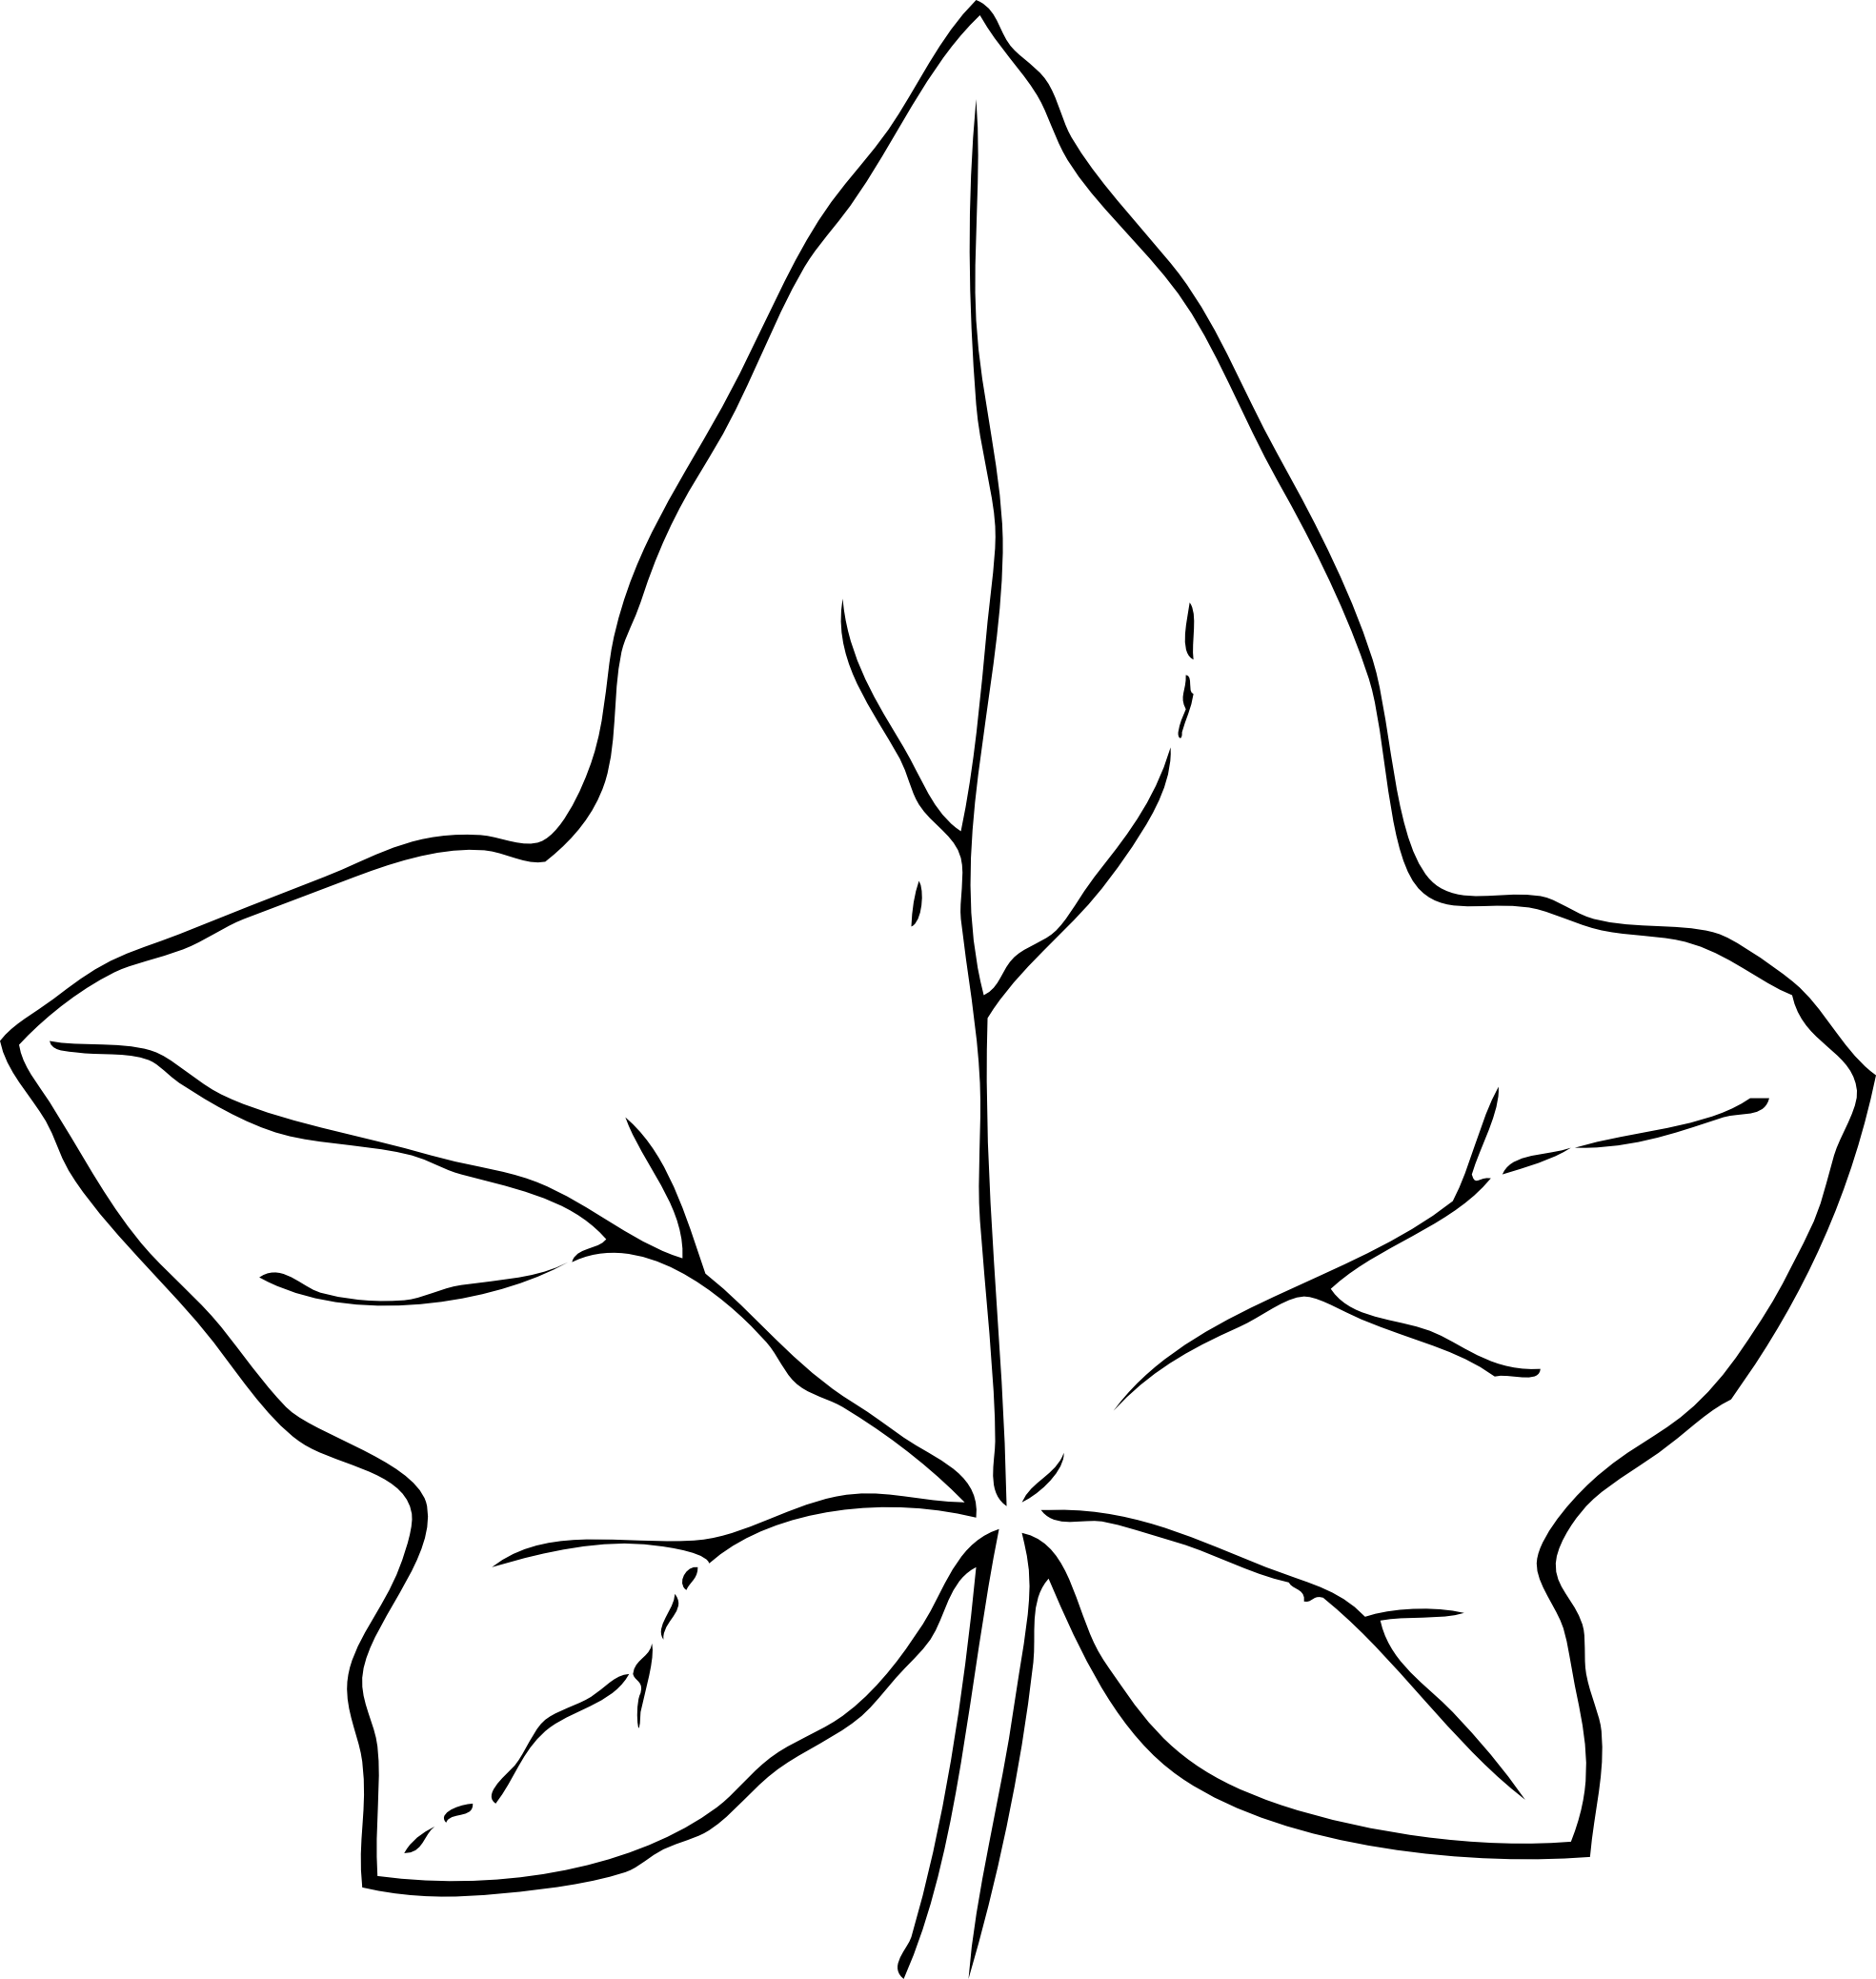 Vector Drawing Lines Libgdx : Leaf drawing vector clipart best